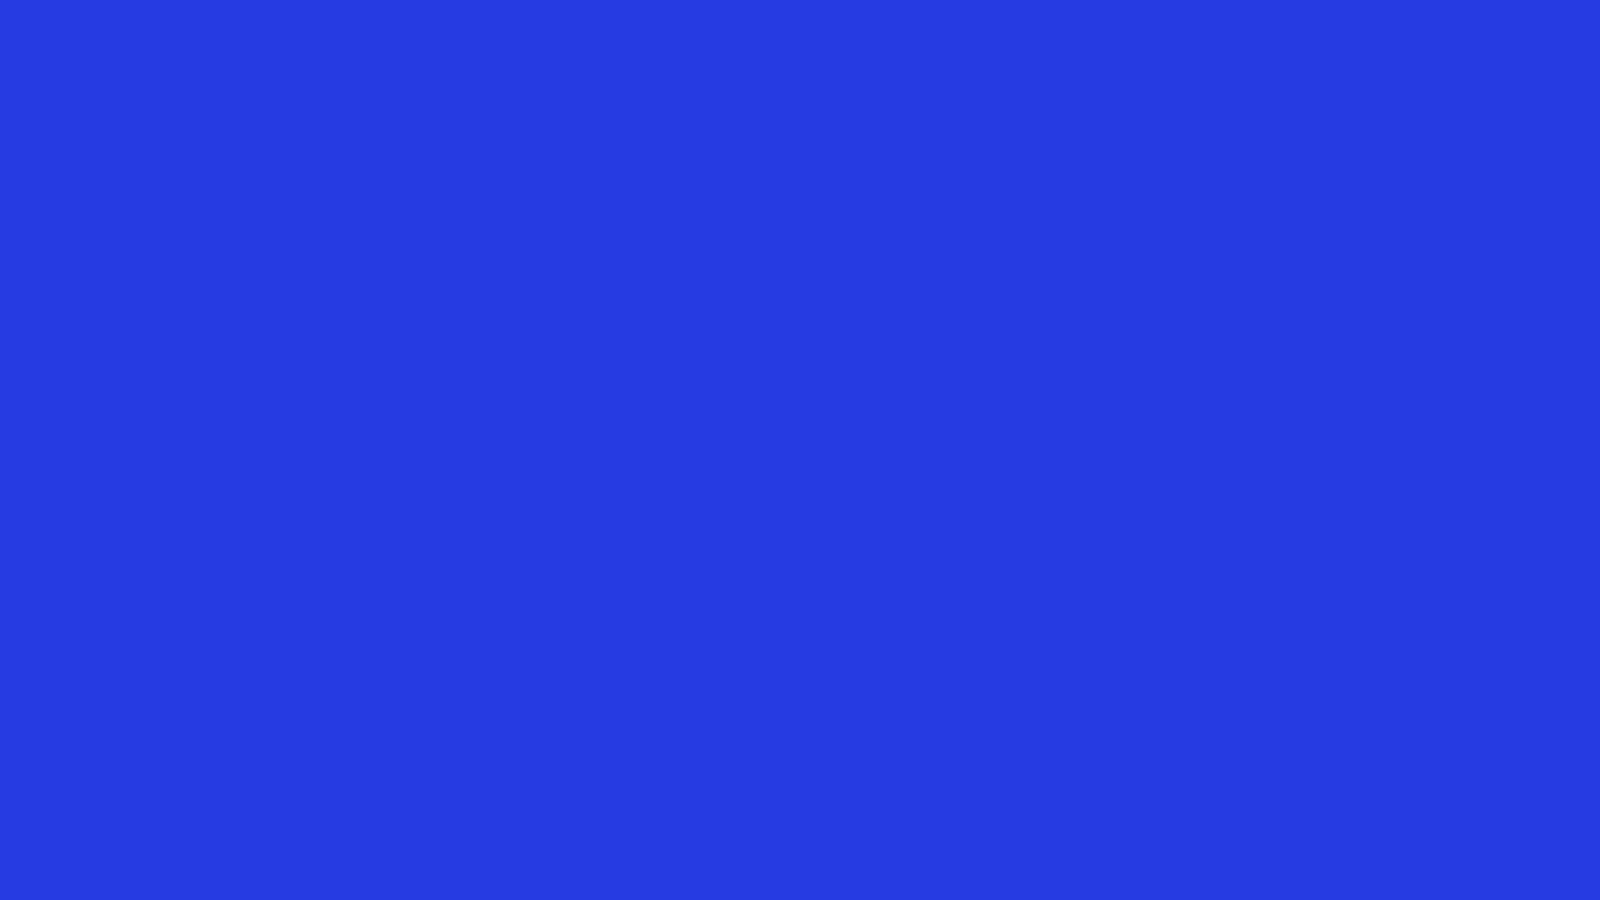 1600x900 Palatinate Blue Solid Color Background